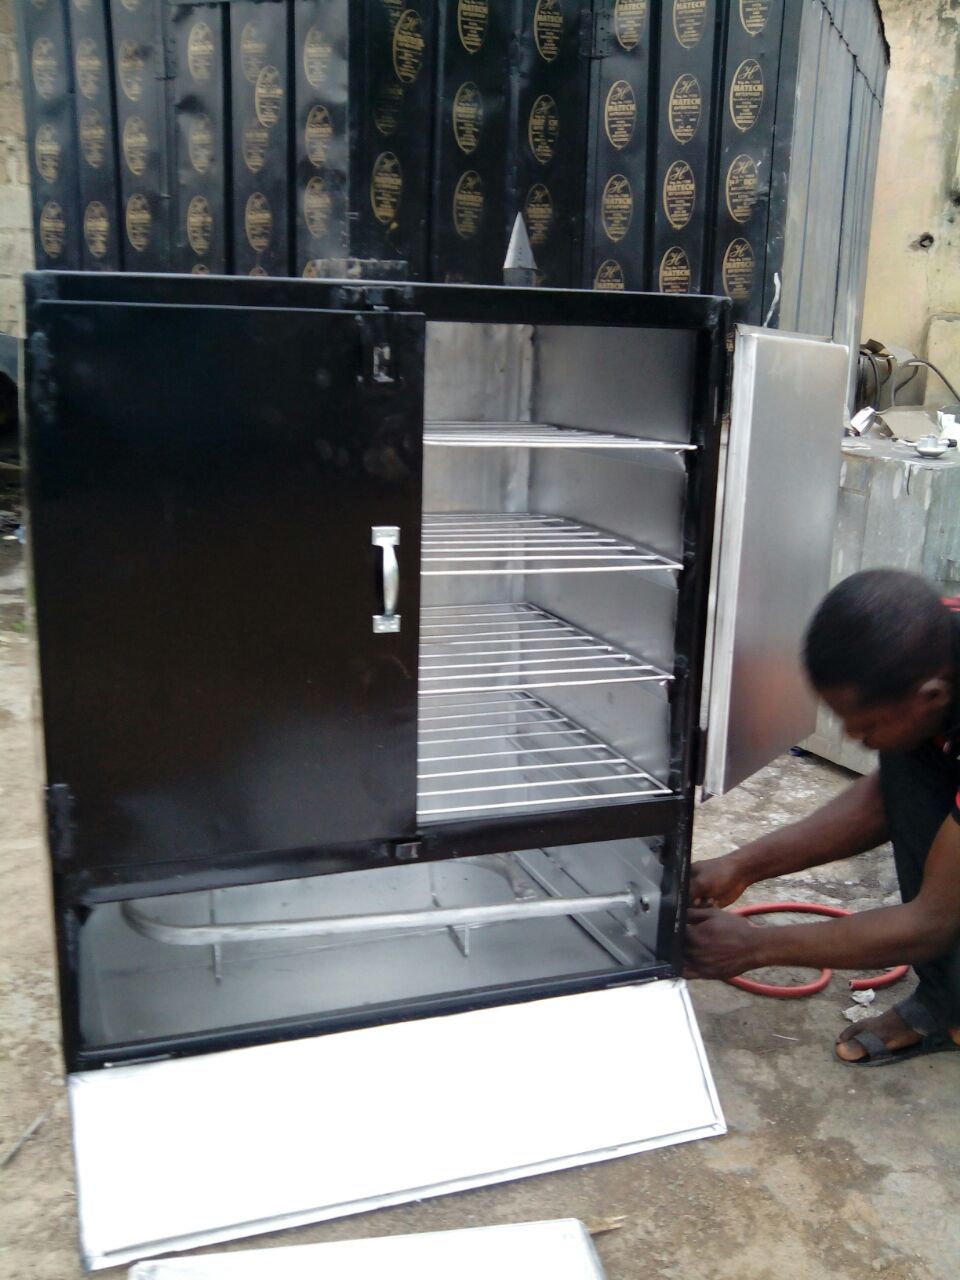 Locally Made Gas Charcoal Oven For Smoking Fish And For